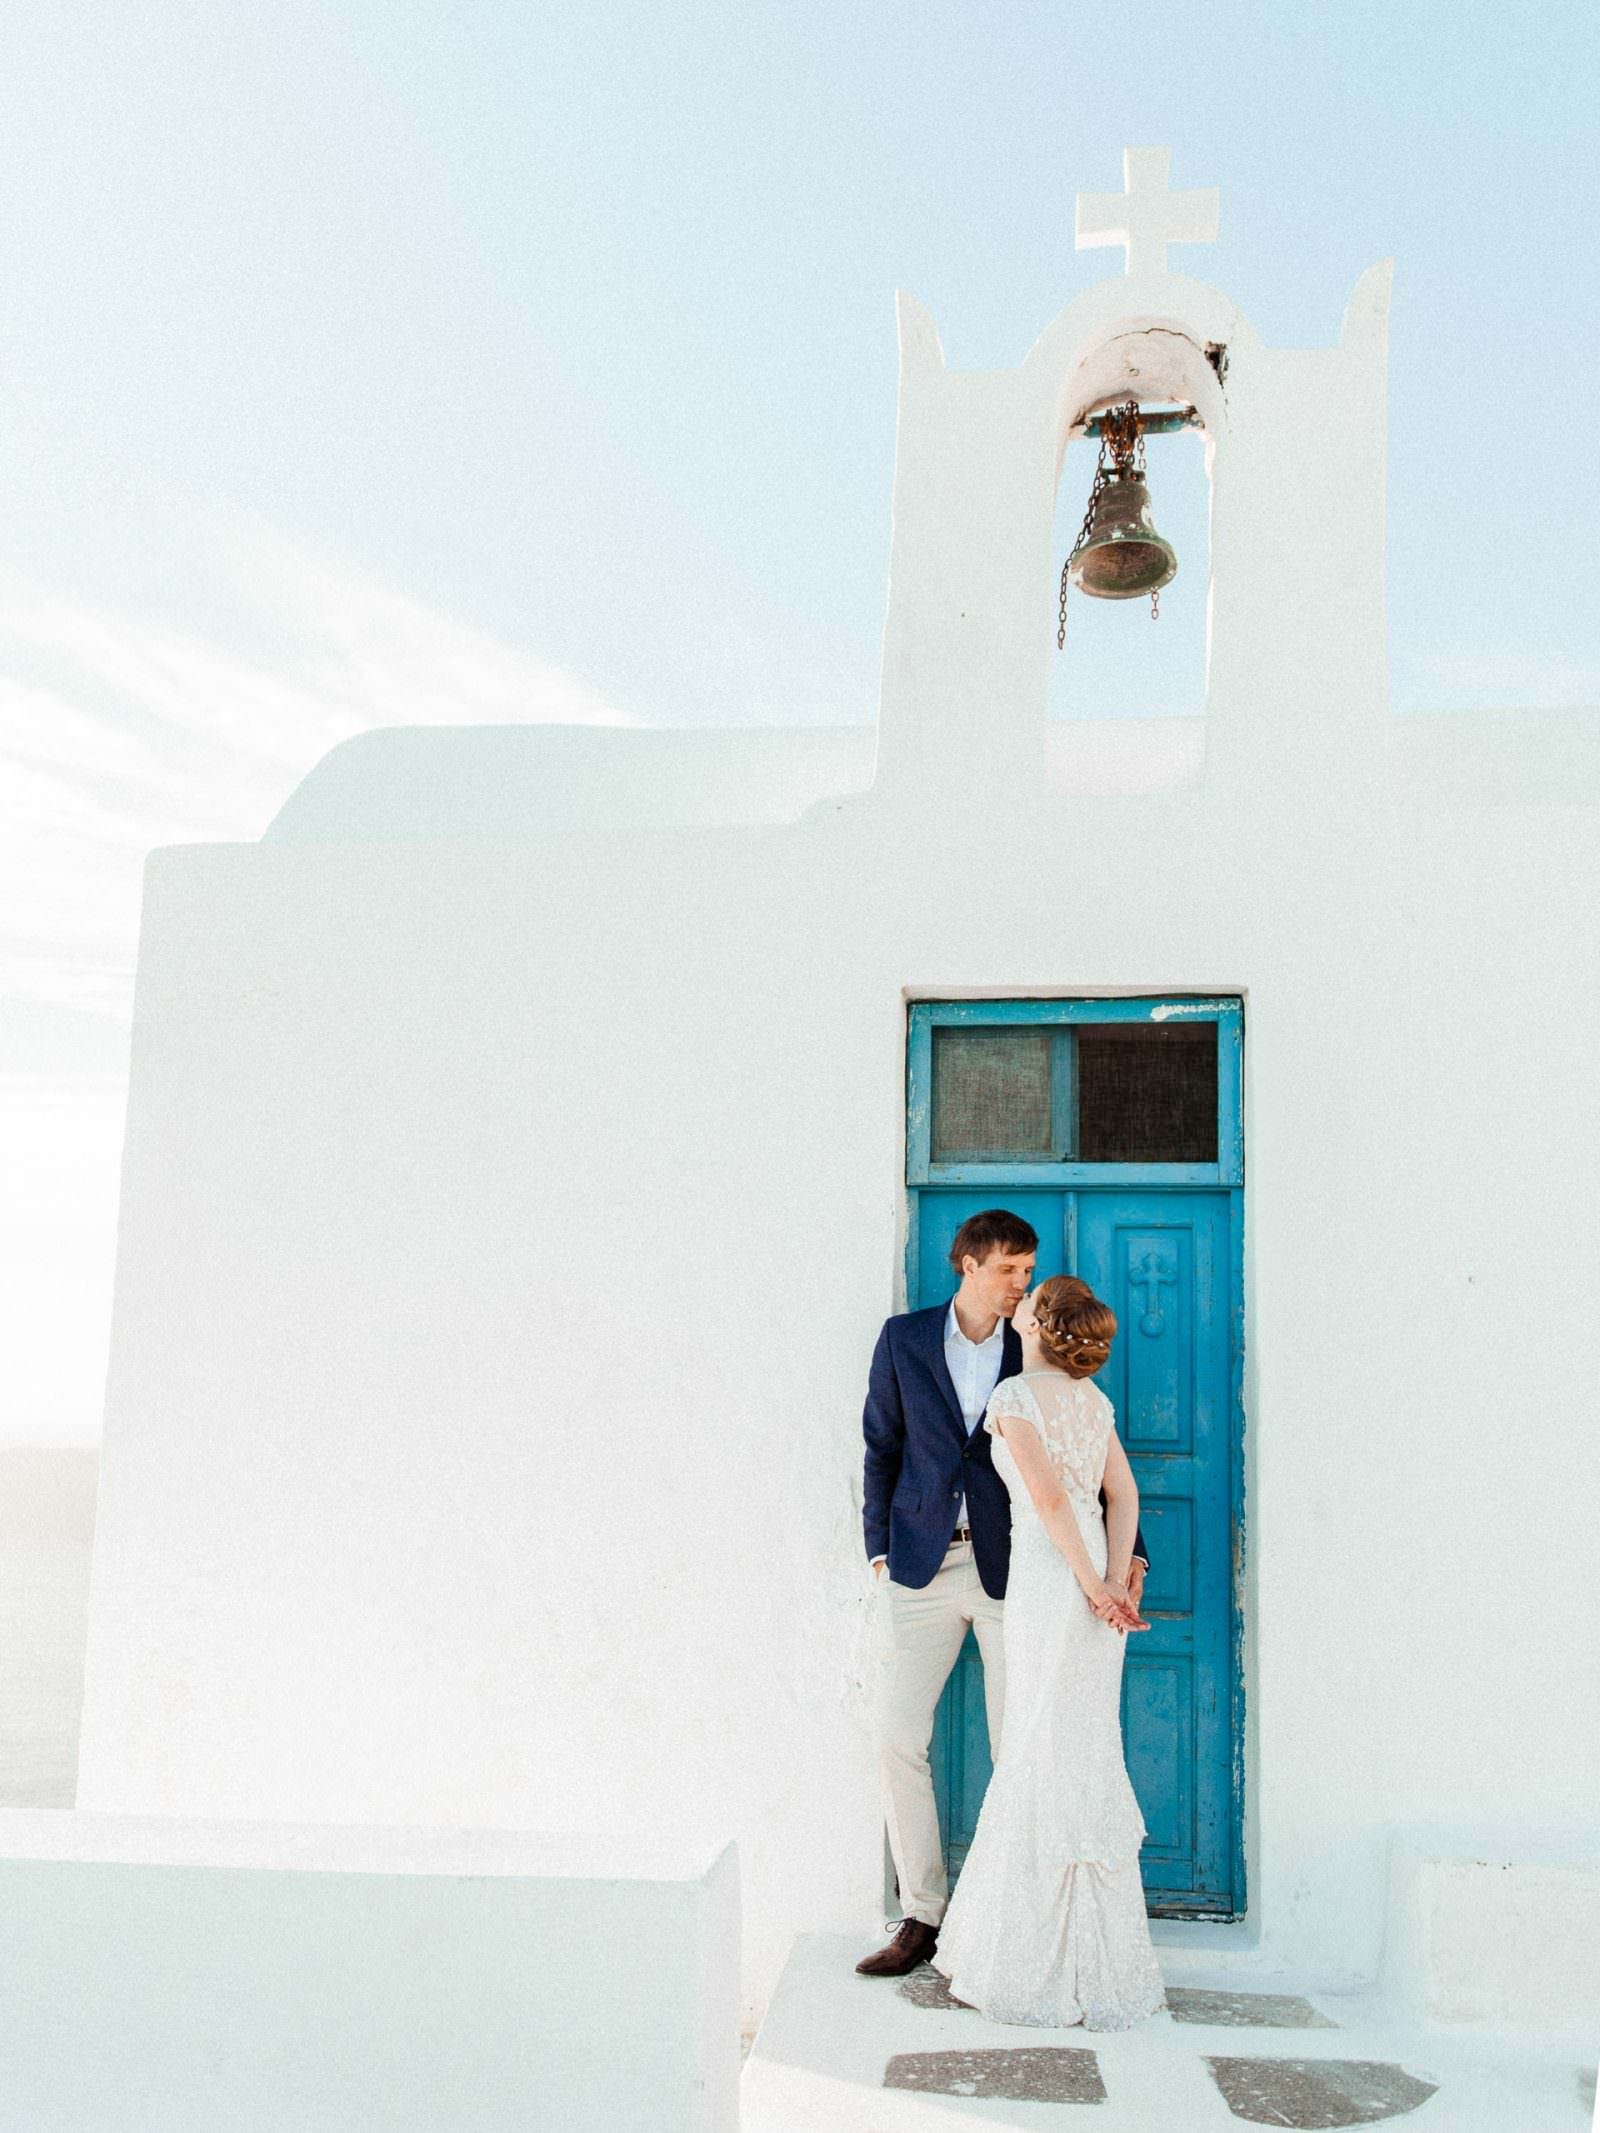 Elopement photos at Imerovigli in Santorini